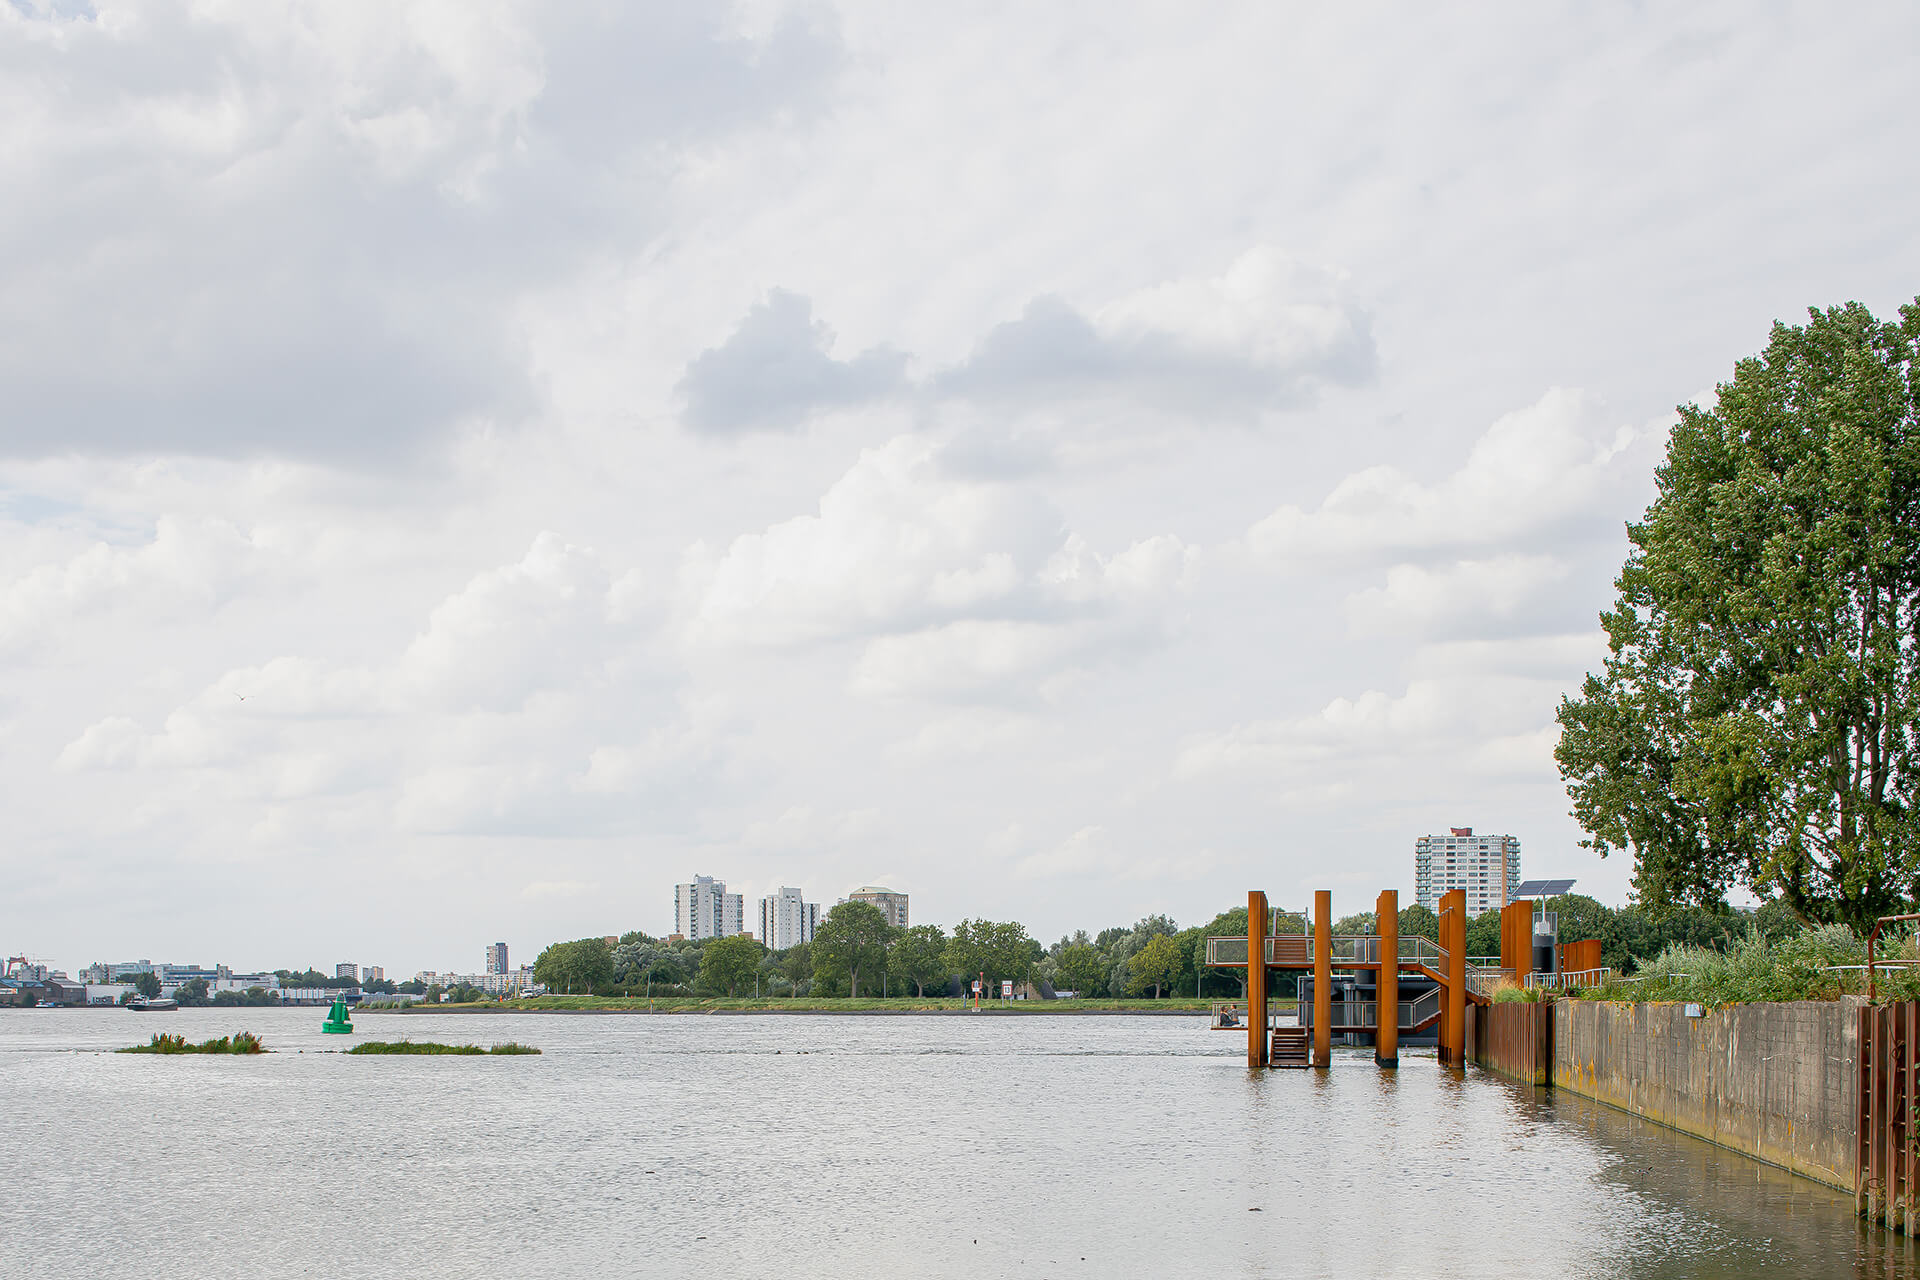 The Water Woods installation is the first of the various Maaspoints that are planned to appear on the edge of the Maas river | Water Woods Maaspoints | Next Architects | STIRworld